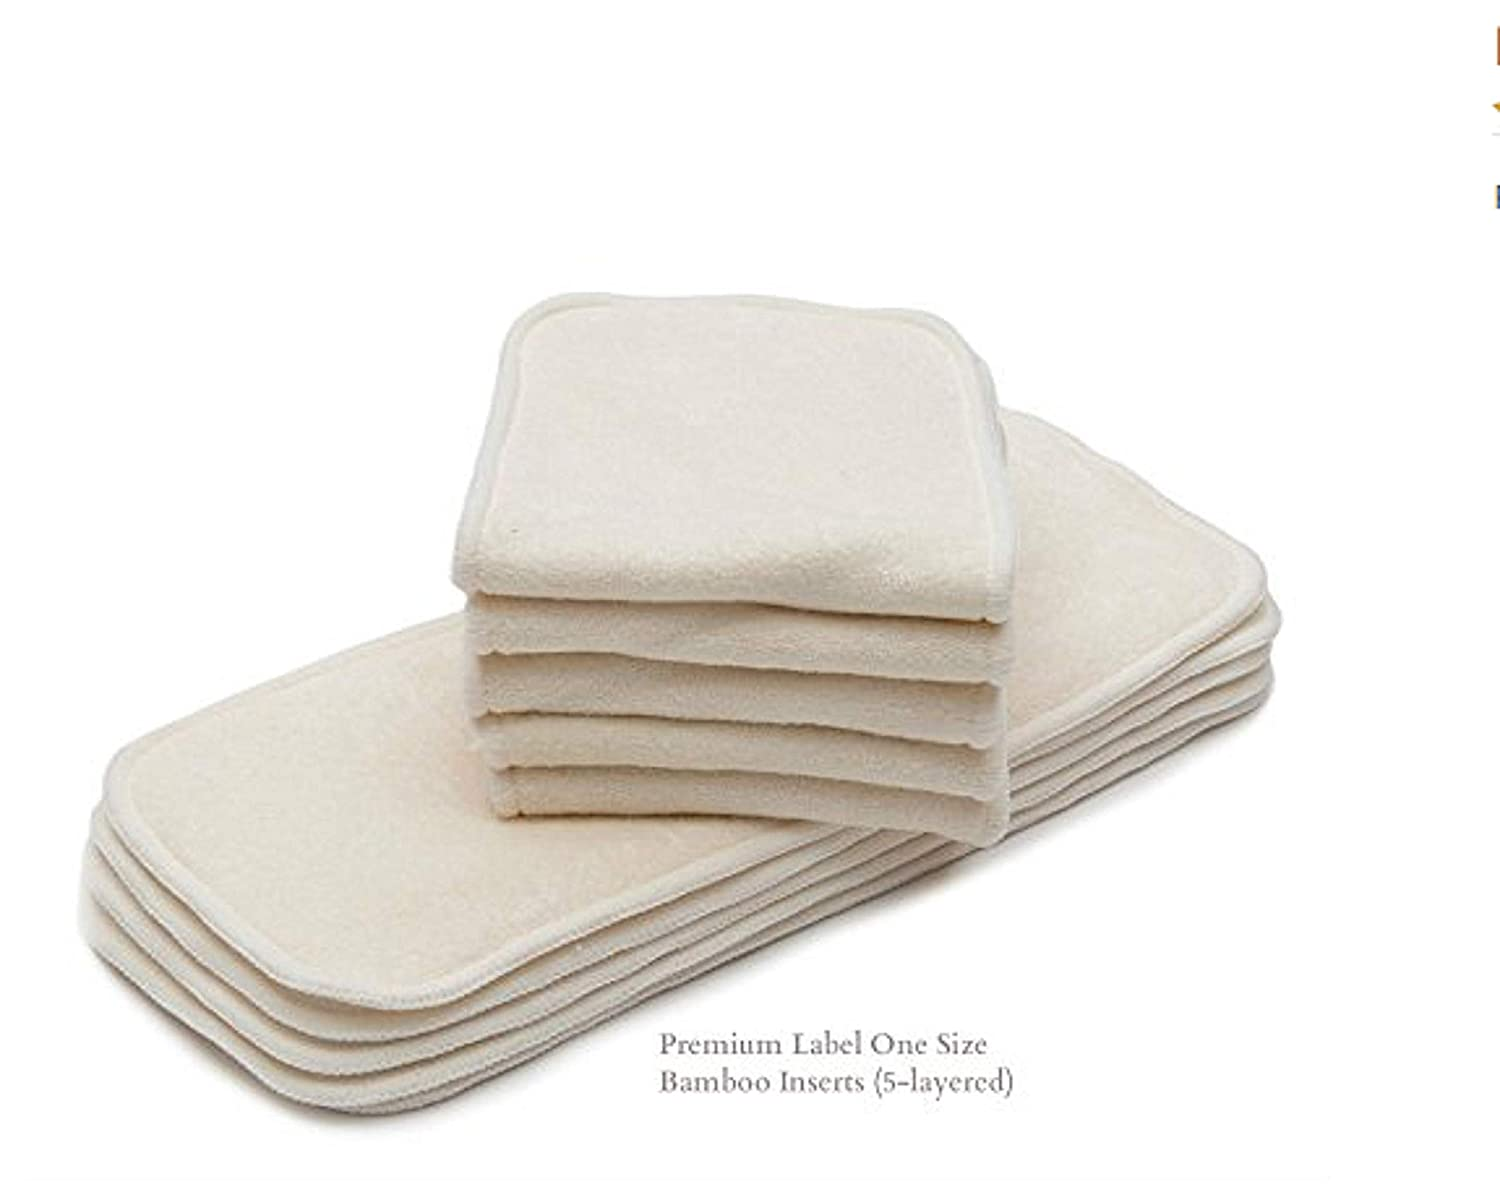 10/Pack KaWaii Premium Label 4-Layered Bamboo Inserts One Size 8-36 lbs, NO Microfiber or fleece inside Luvyourbaby Products